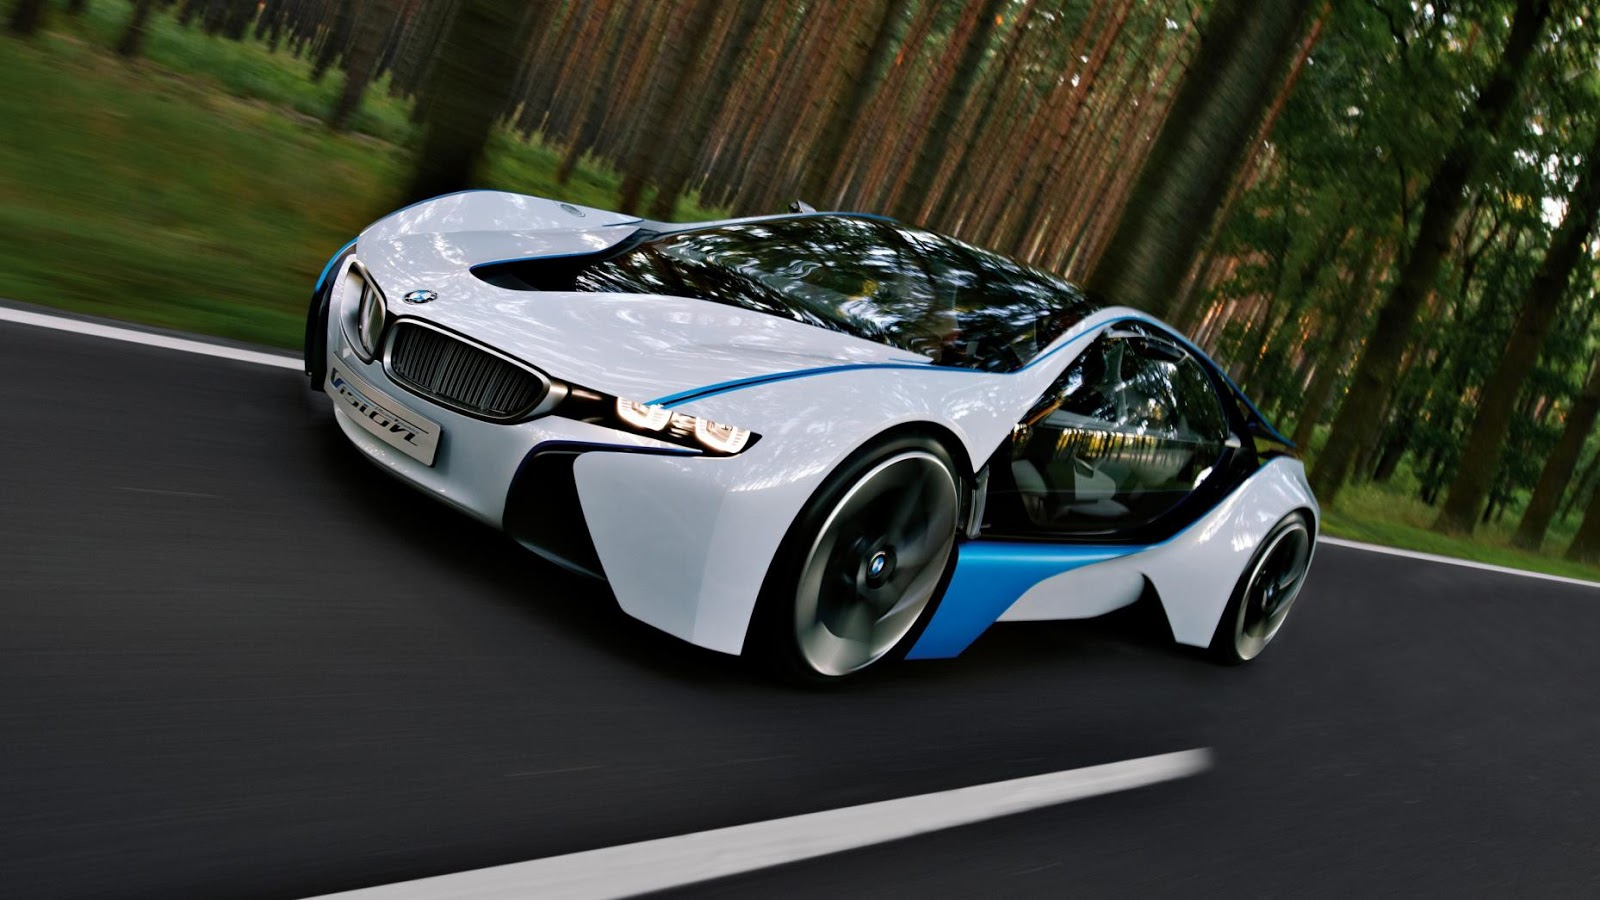 2009: BMW Vision Efficient Dynamics